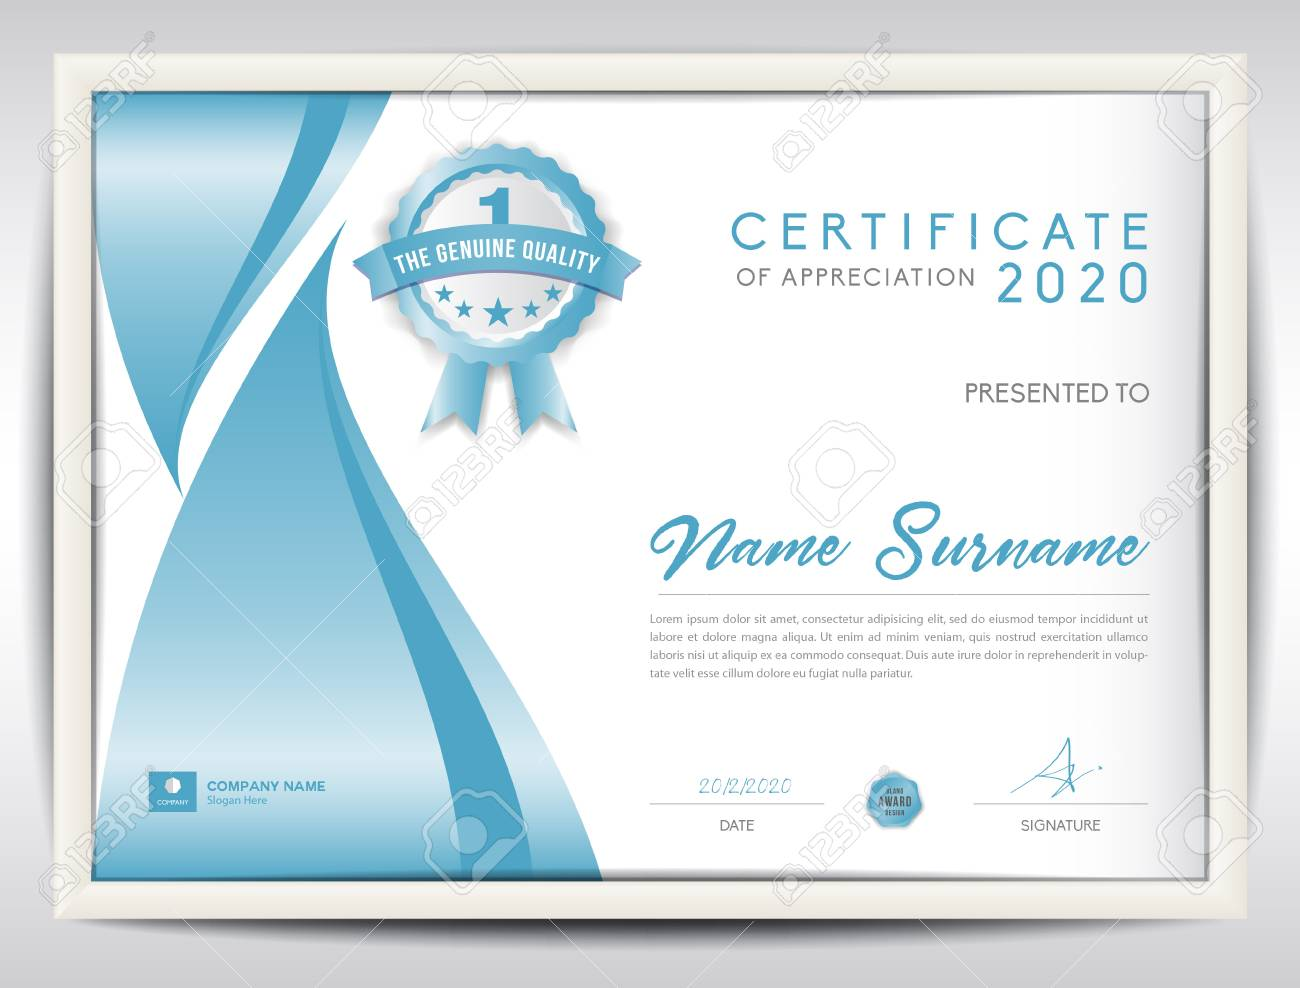 Business certificate template choice image business cards ideas certificate template vector illustration diploma layout in a4 certificate template vector illustration diploma layout in a4 cheaphphosting Images